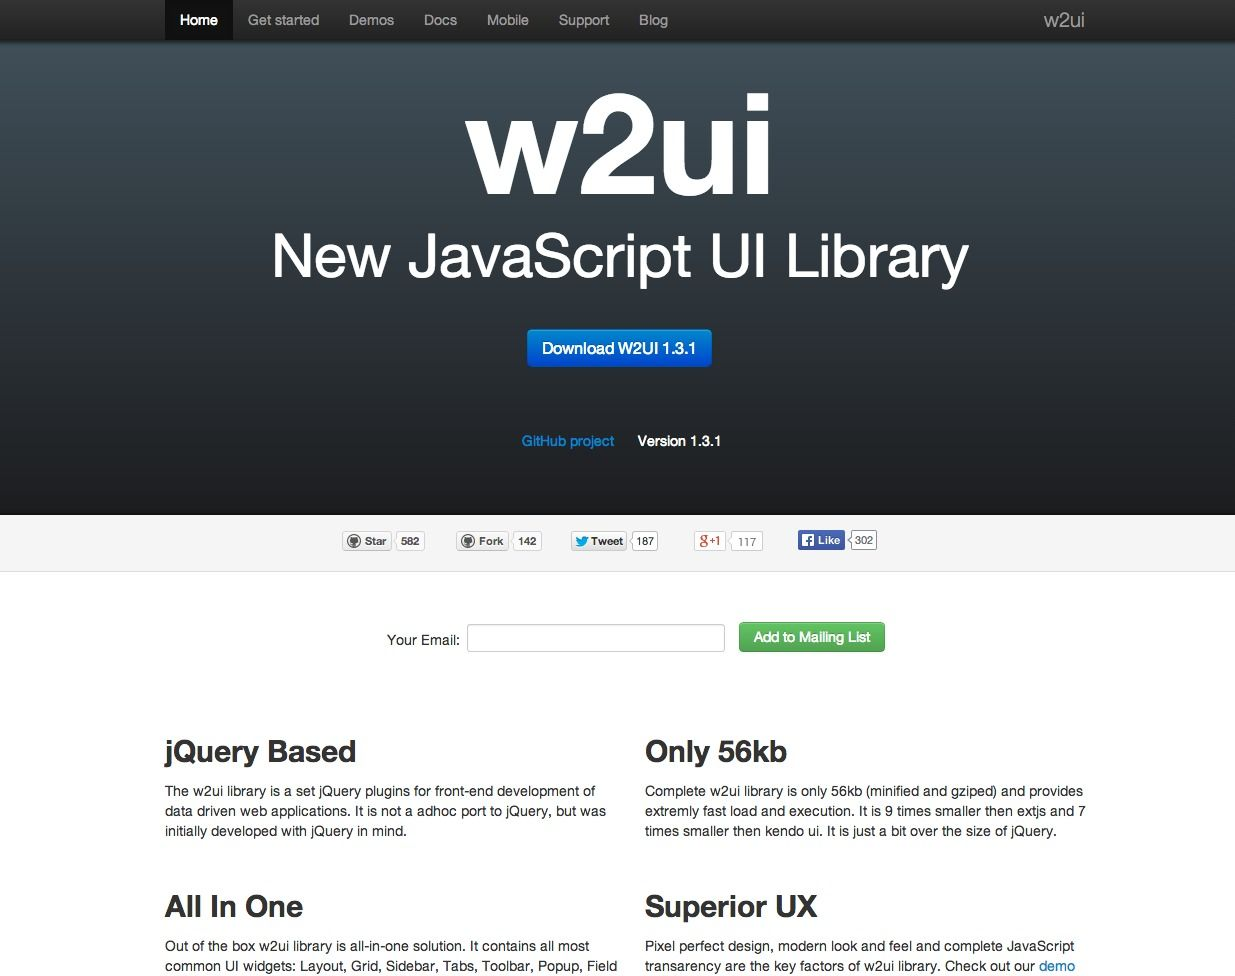 Jquery plugins to work with data presentation and grid layout - W2ui Light Weight Jquery Based Plugins For Front End Development Of Data Driven